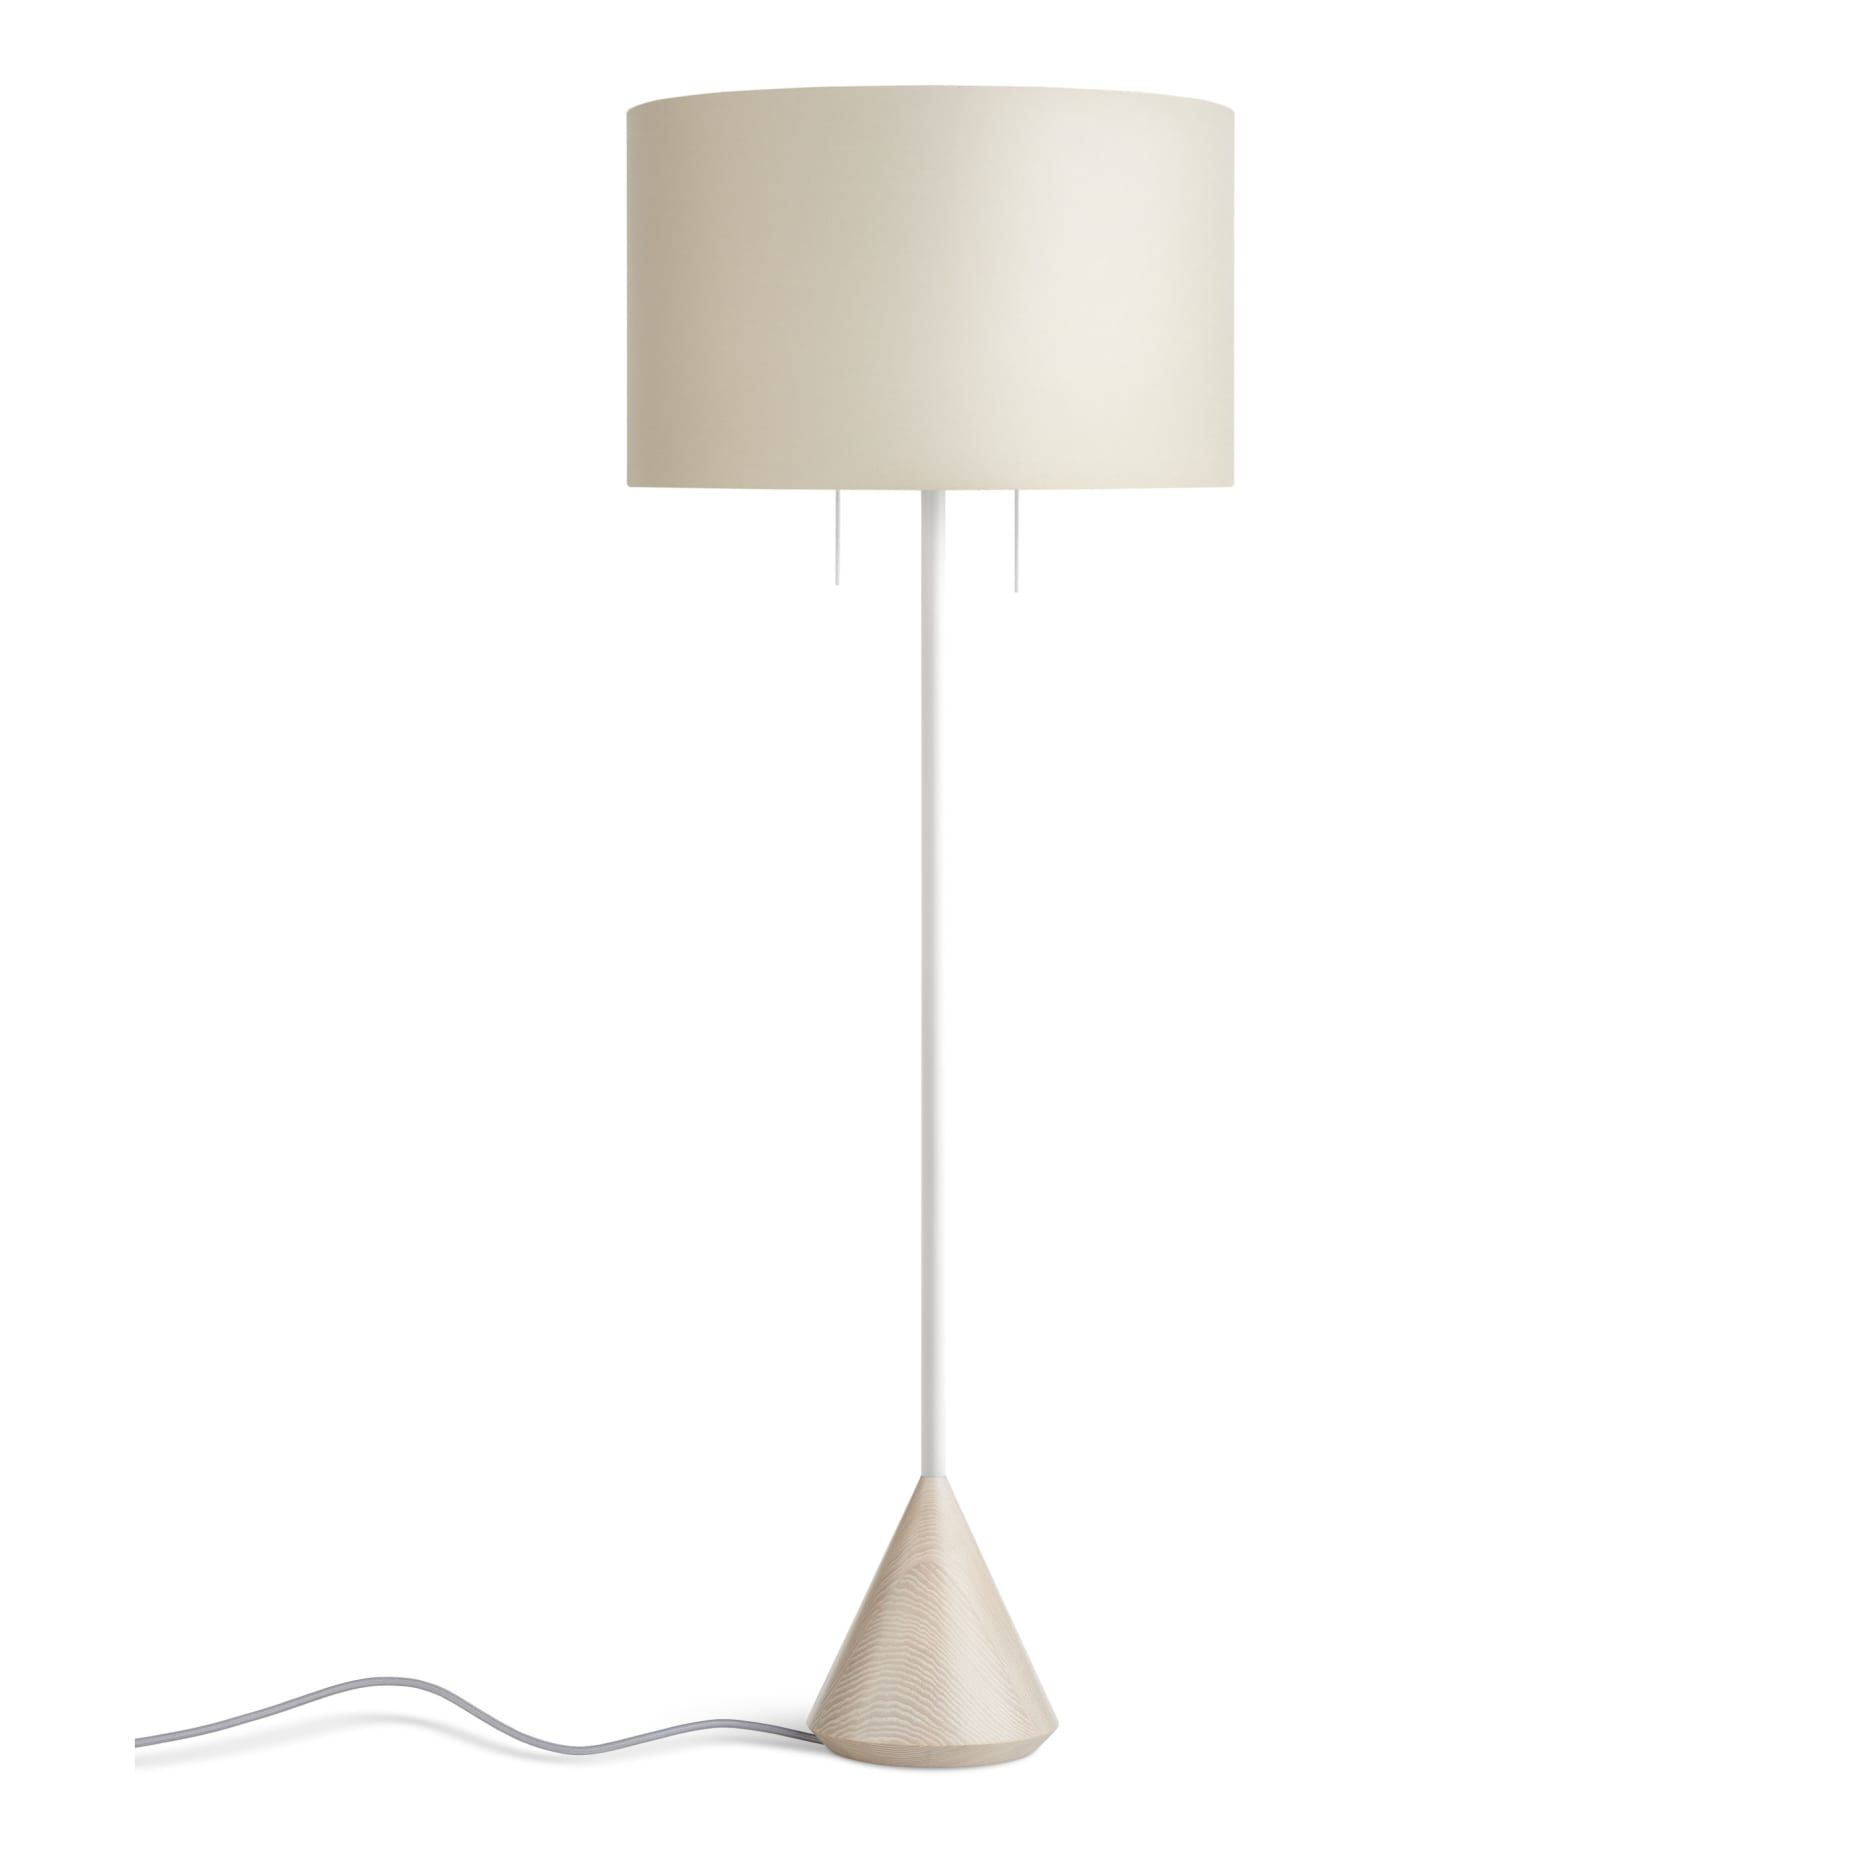 moooi lampen outlet